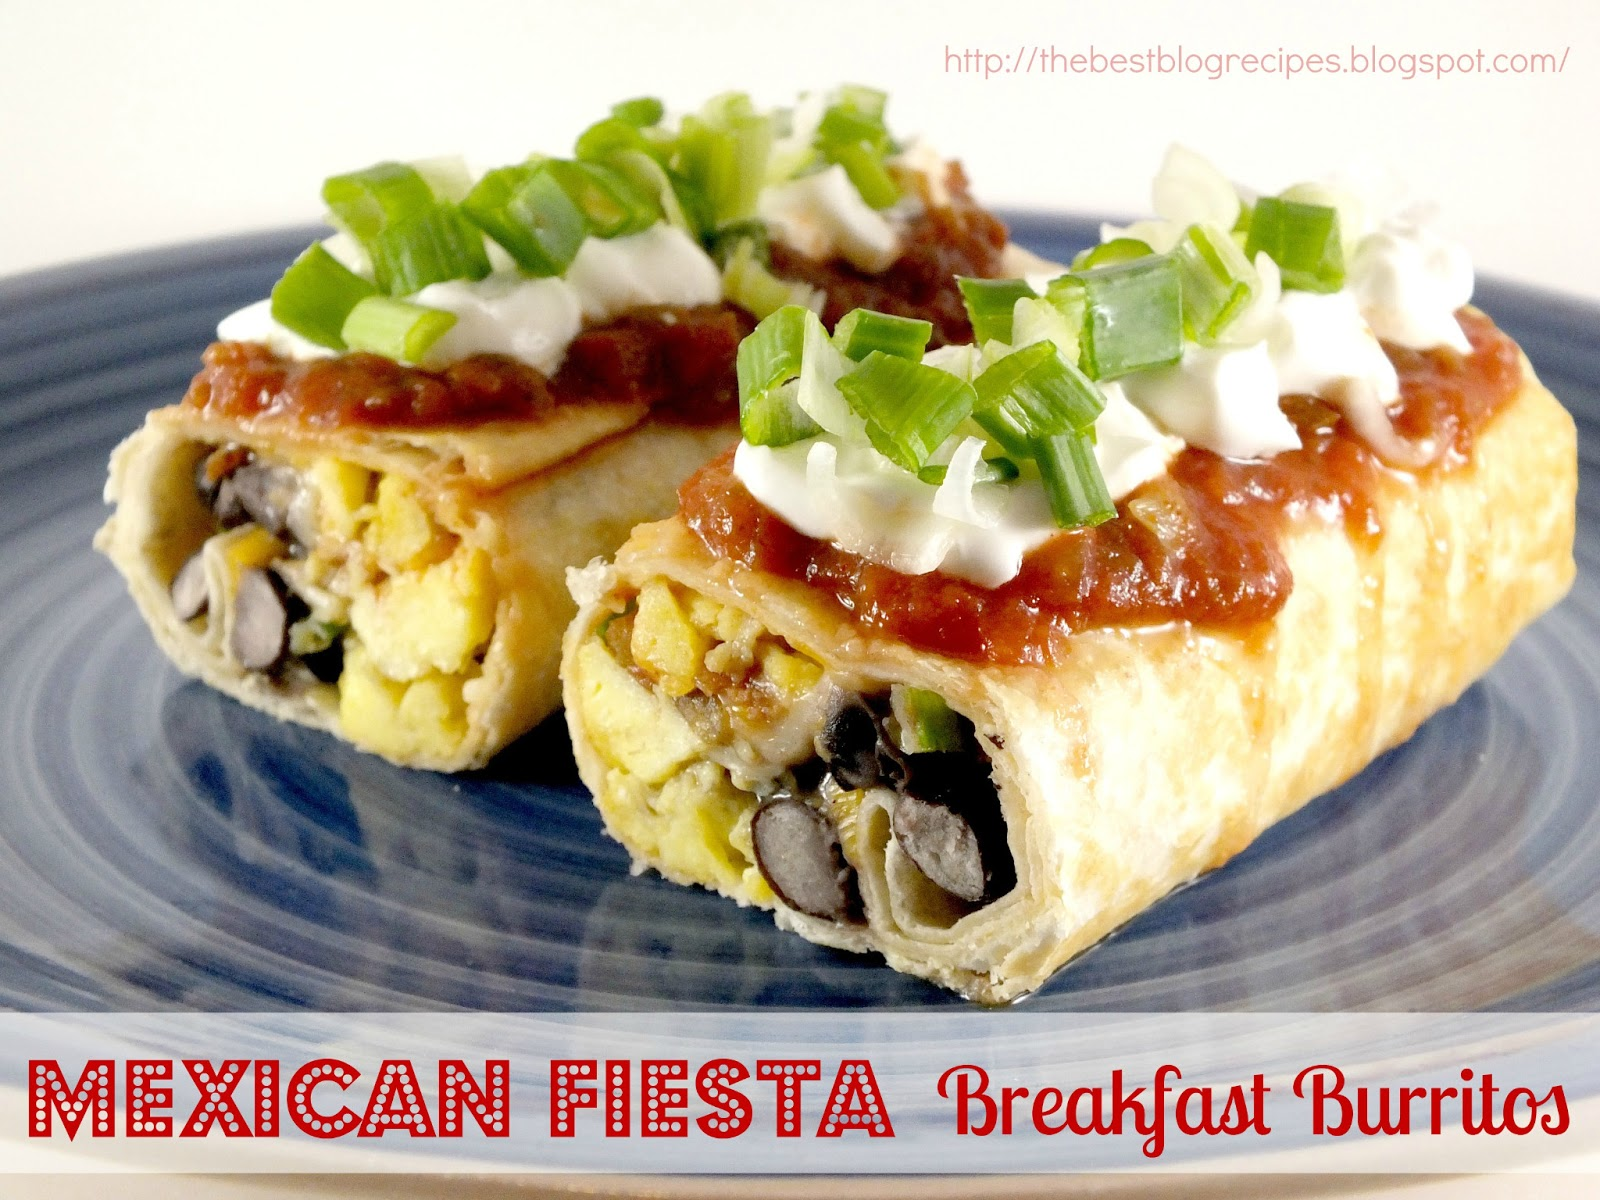 The Best Blog Recipes: Mexican Fiesta Breakfast Burritos